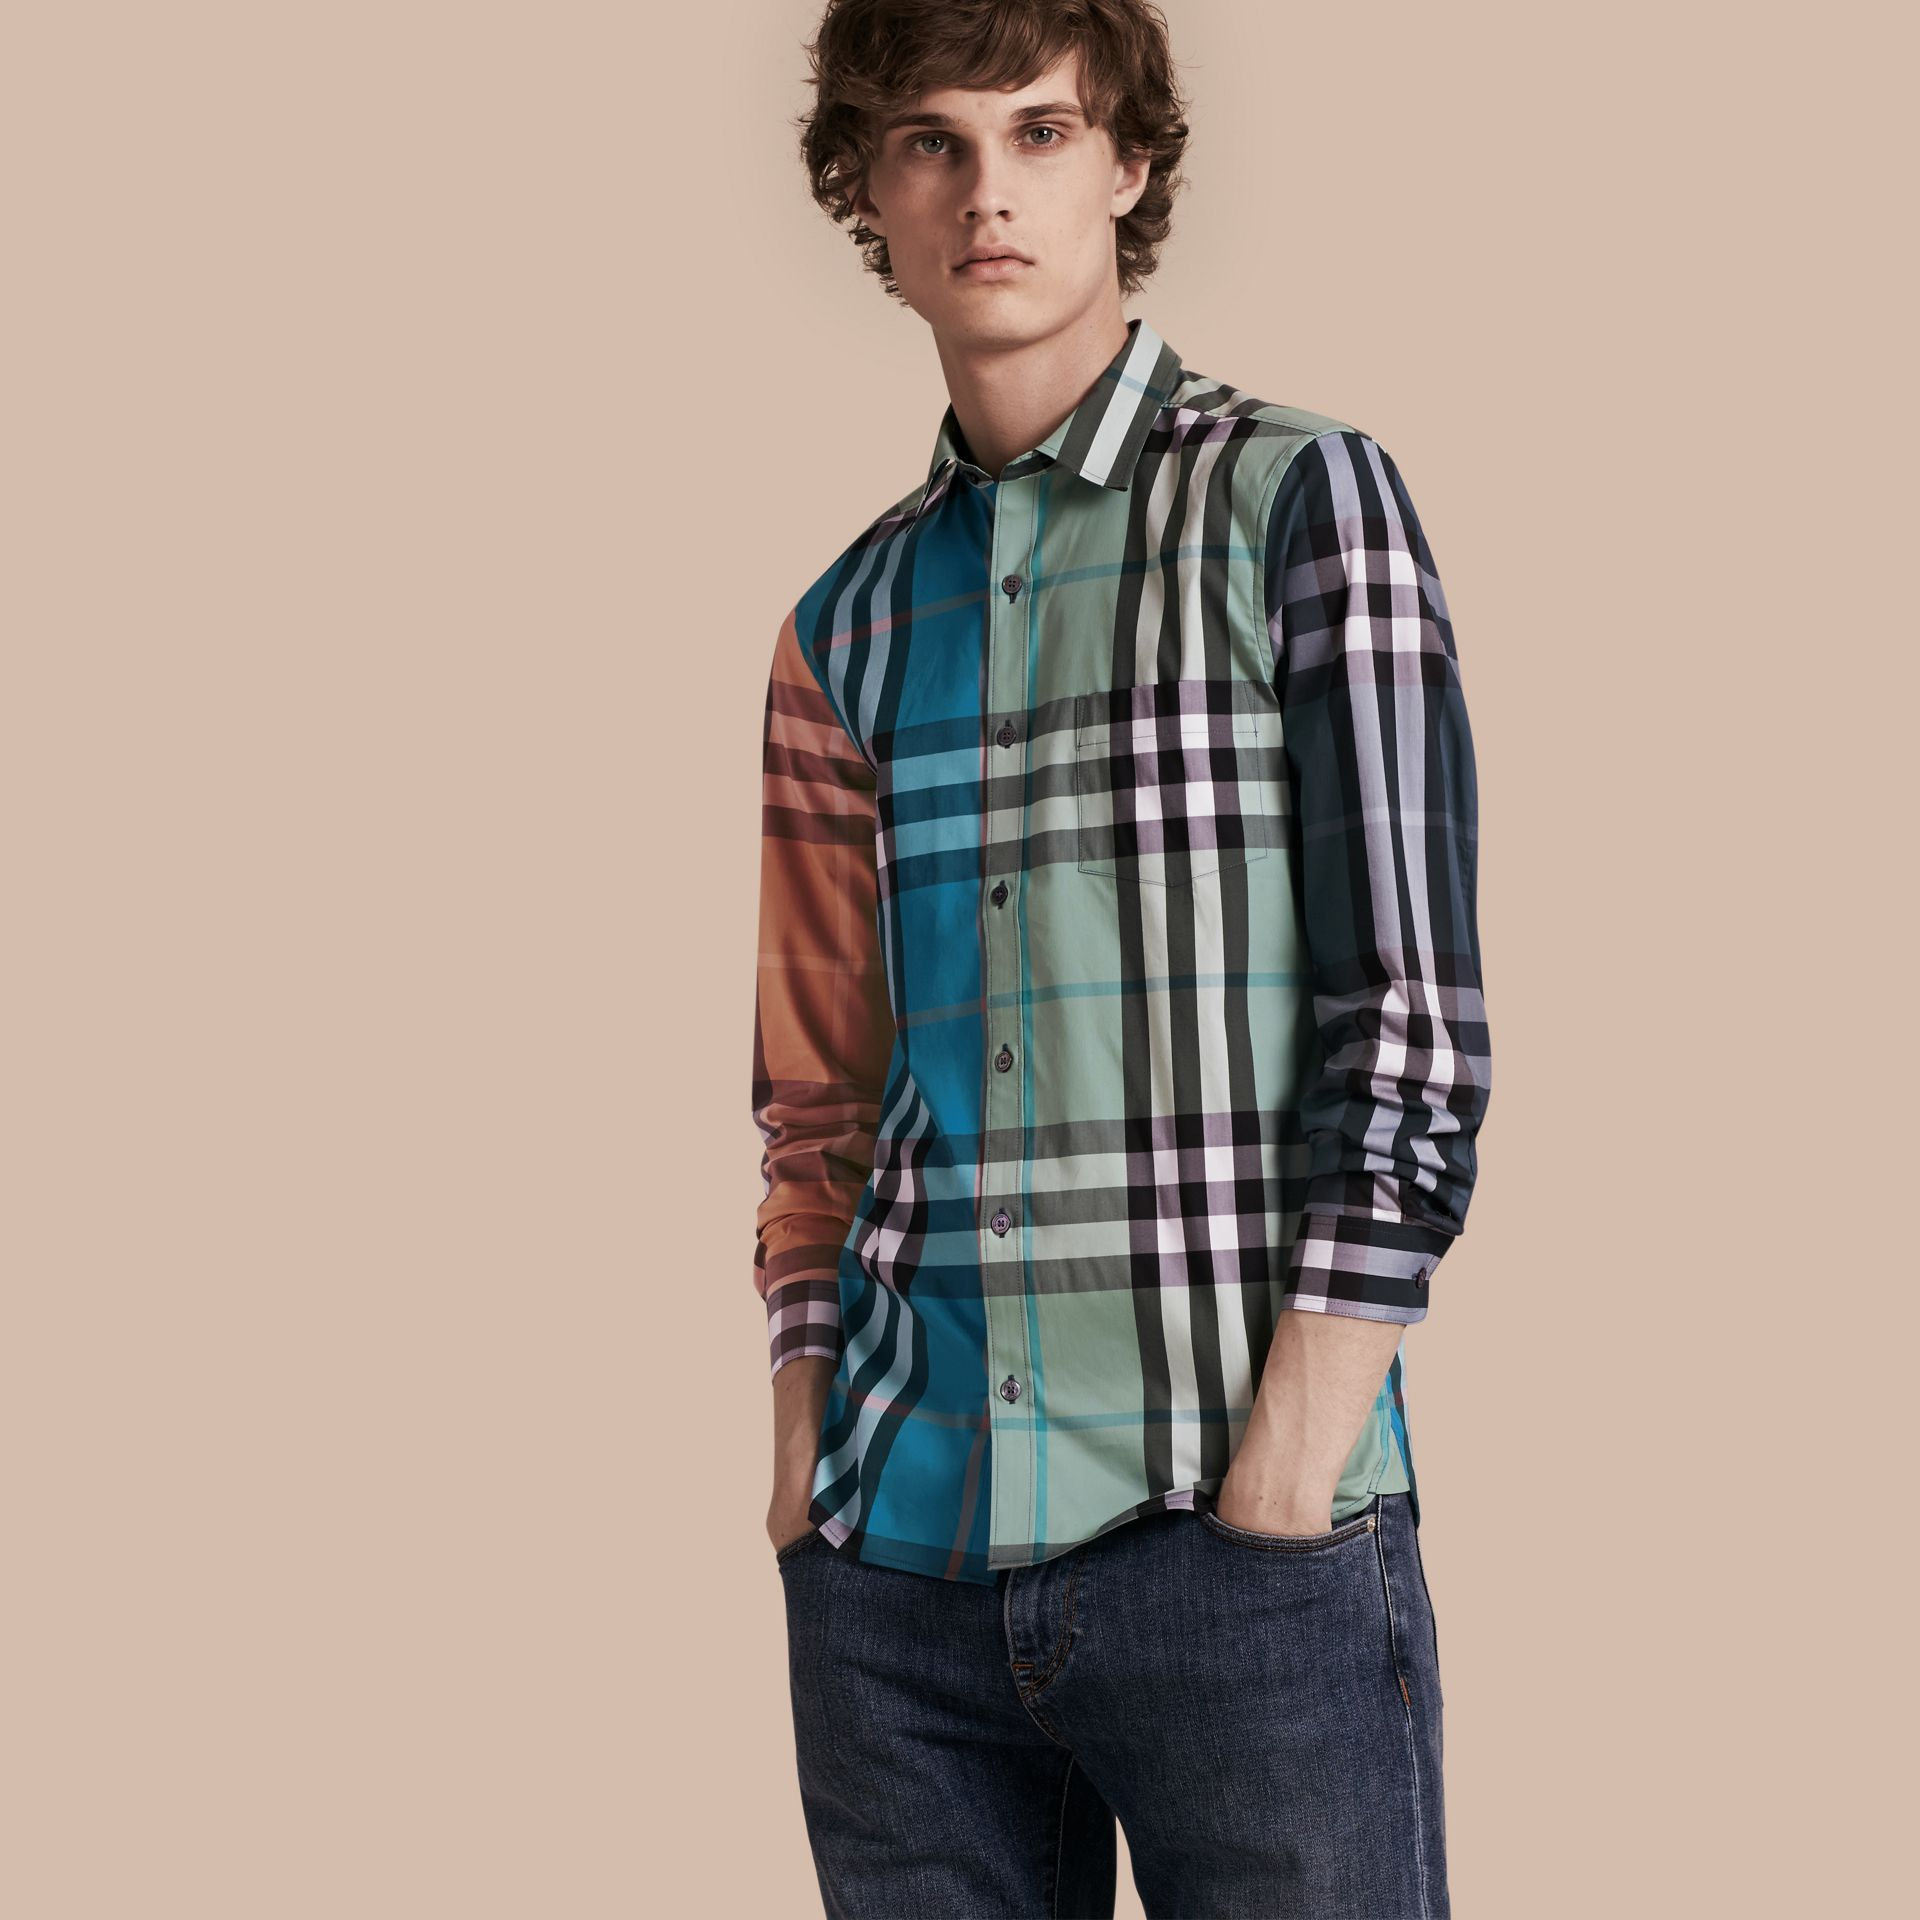 Cerulean blue Colour Block Check Cotton Blend Shirt Cerulean Blue - gallery image 1